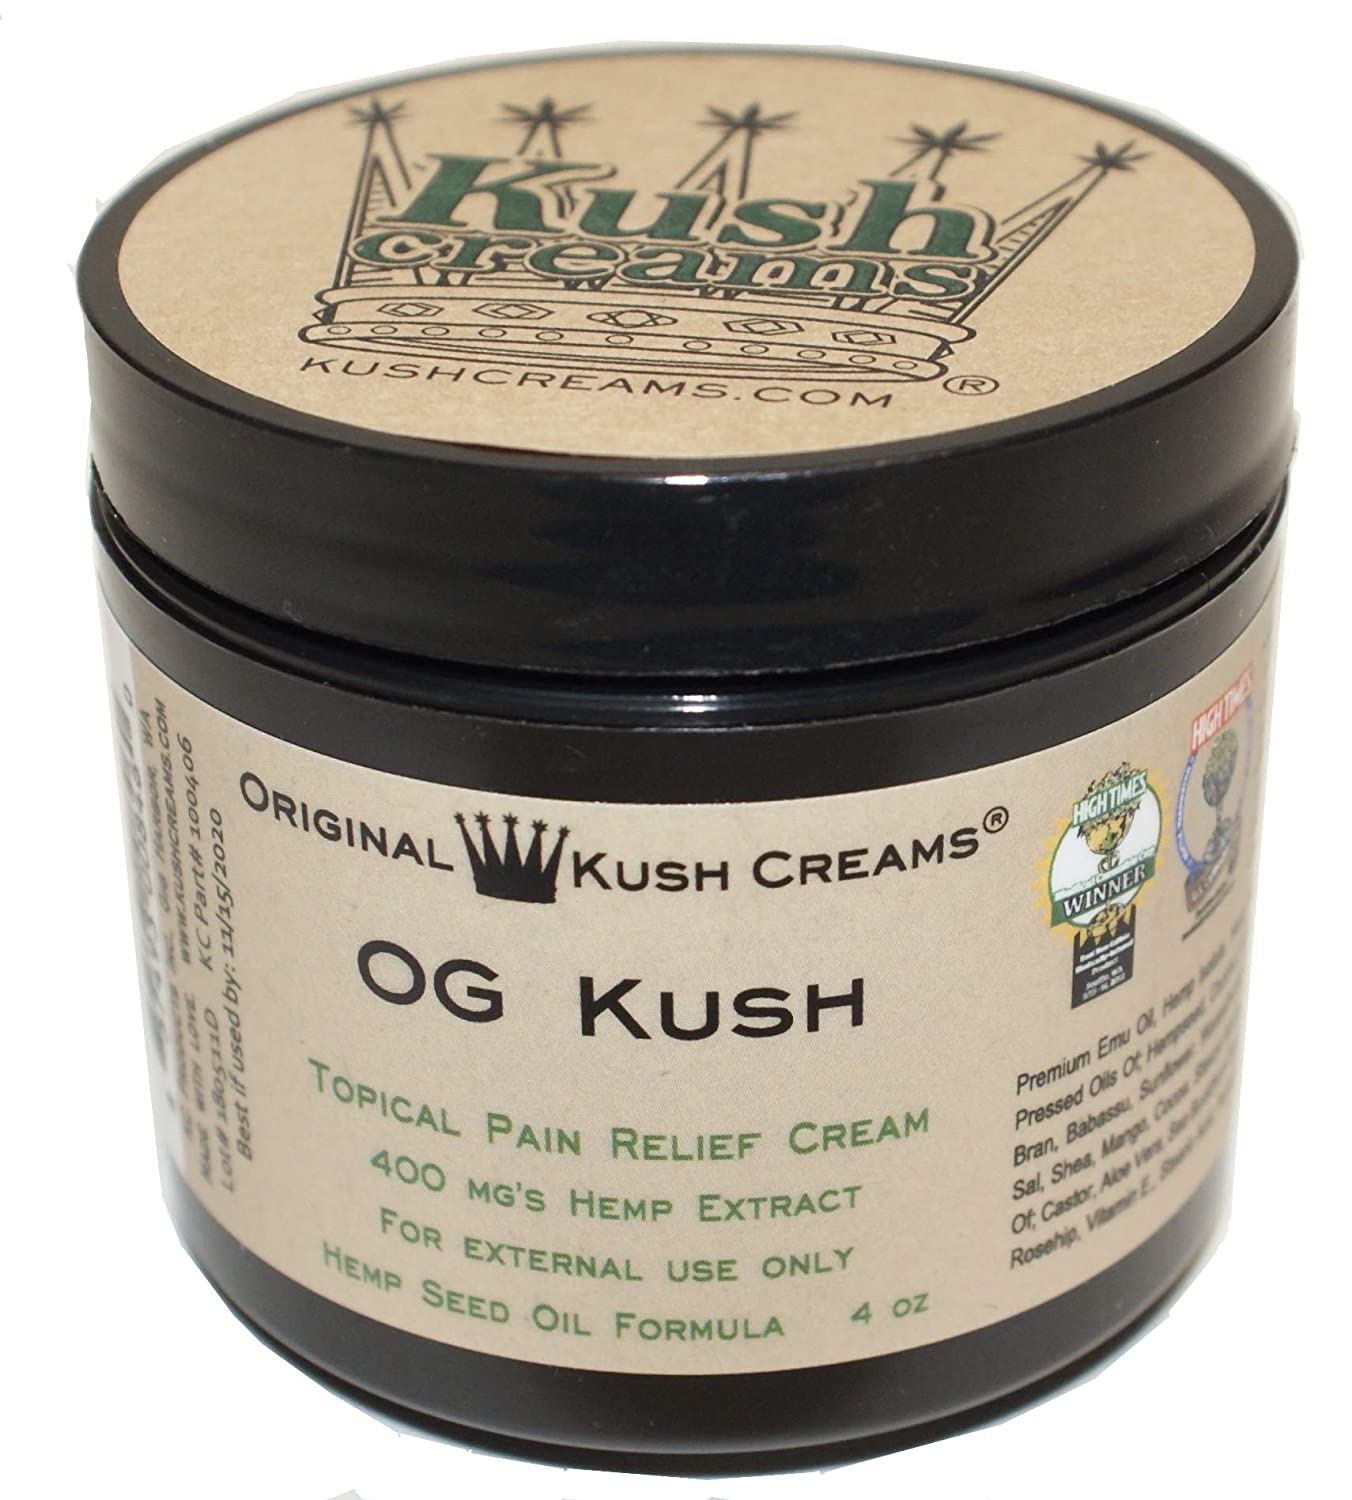 Amazon.com: Kush Creams - OG Kush - Emu Oil & Hemp Oil Infused w/ 30+ Herbal Ingredients - Topical Pain Relief Cream with Aromatherapy - Award Winning ...